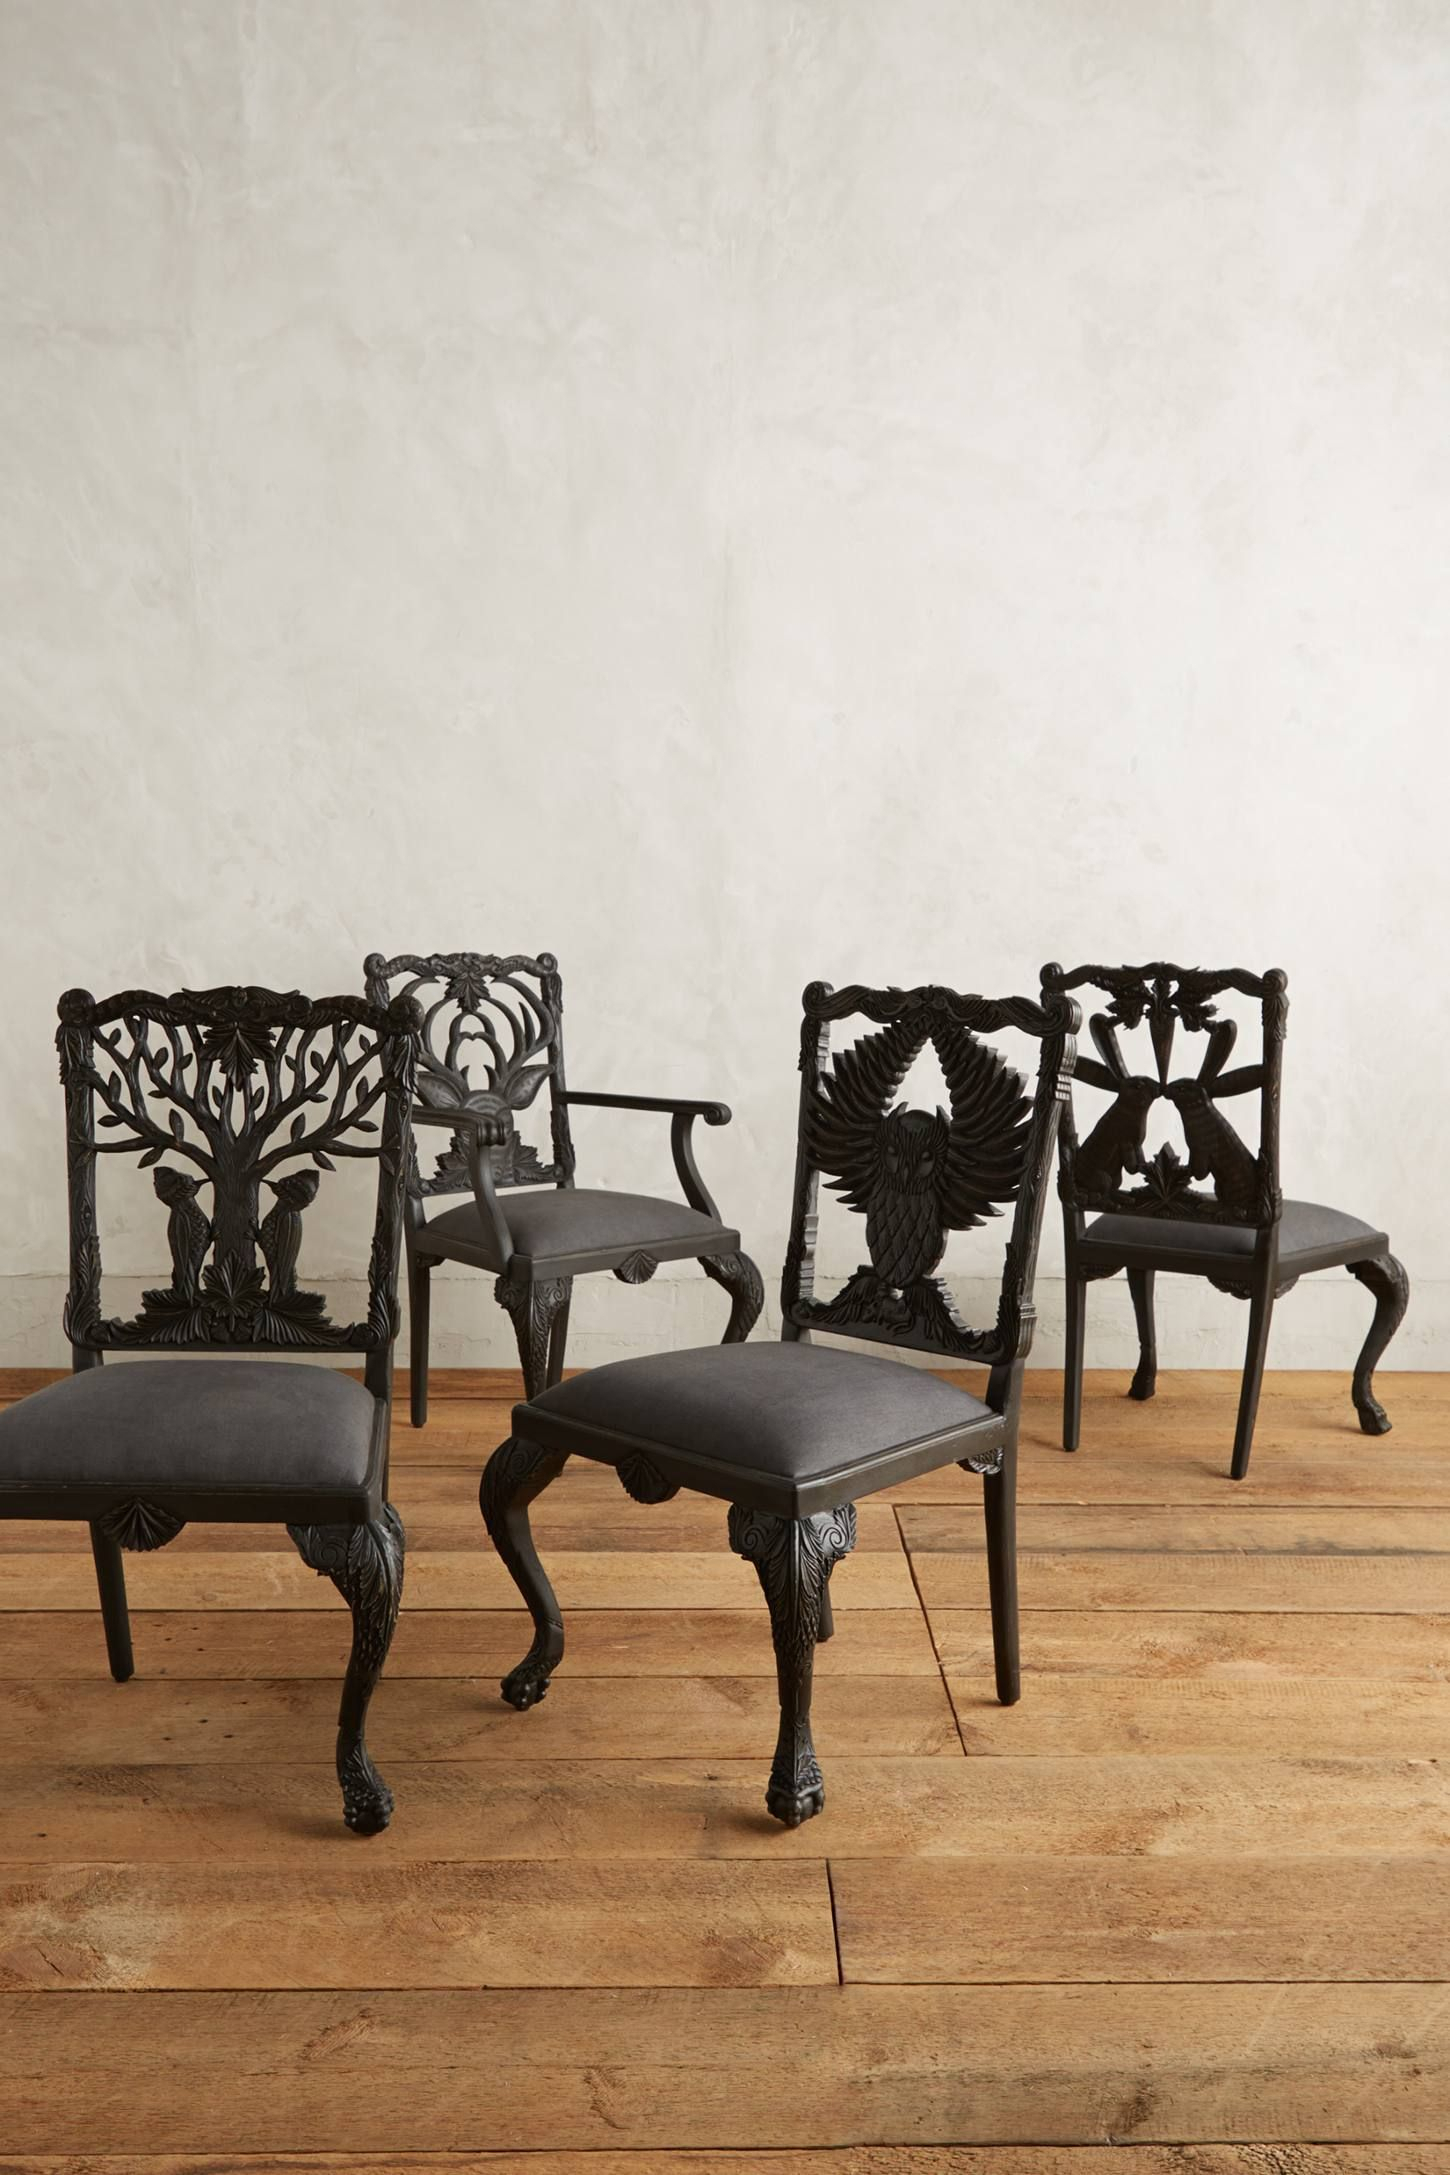 Handcarved Menagerie Deer Armchair | Dining Chairs Intended For Deer Trail Armchairs (View 8 of 15)